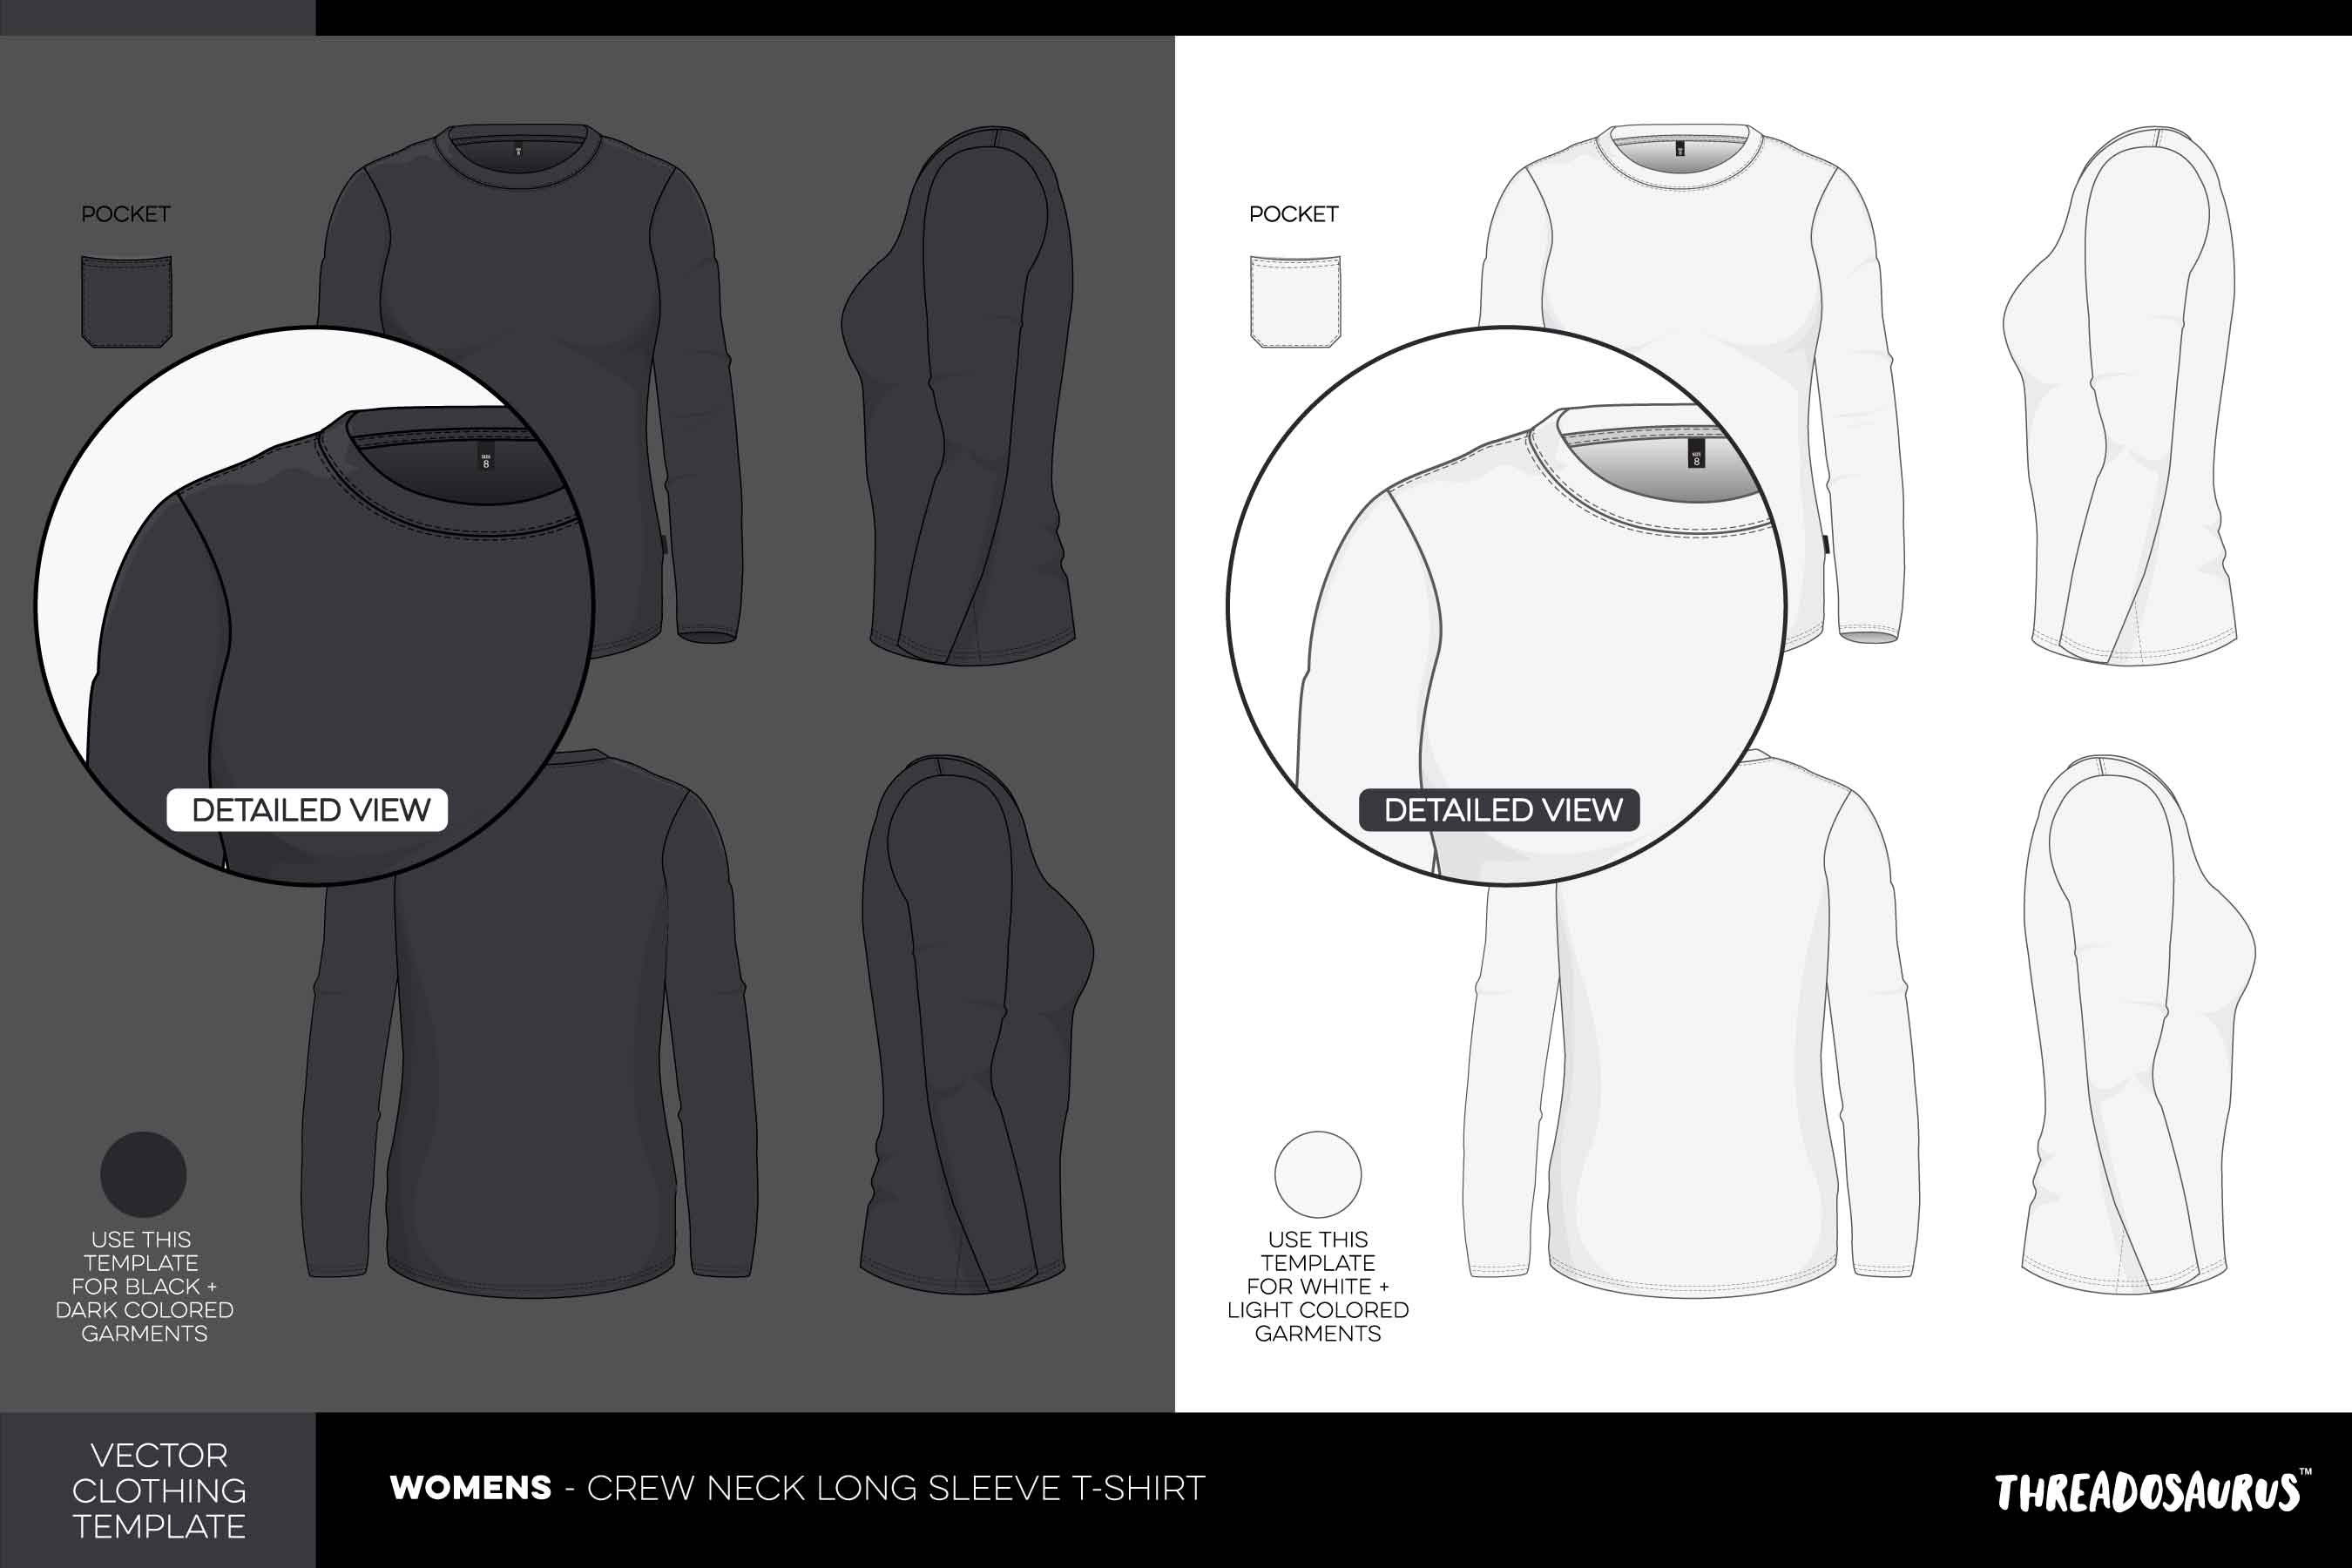 womens crew neck long sleeve t-shirt template vector